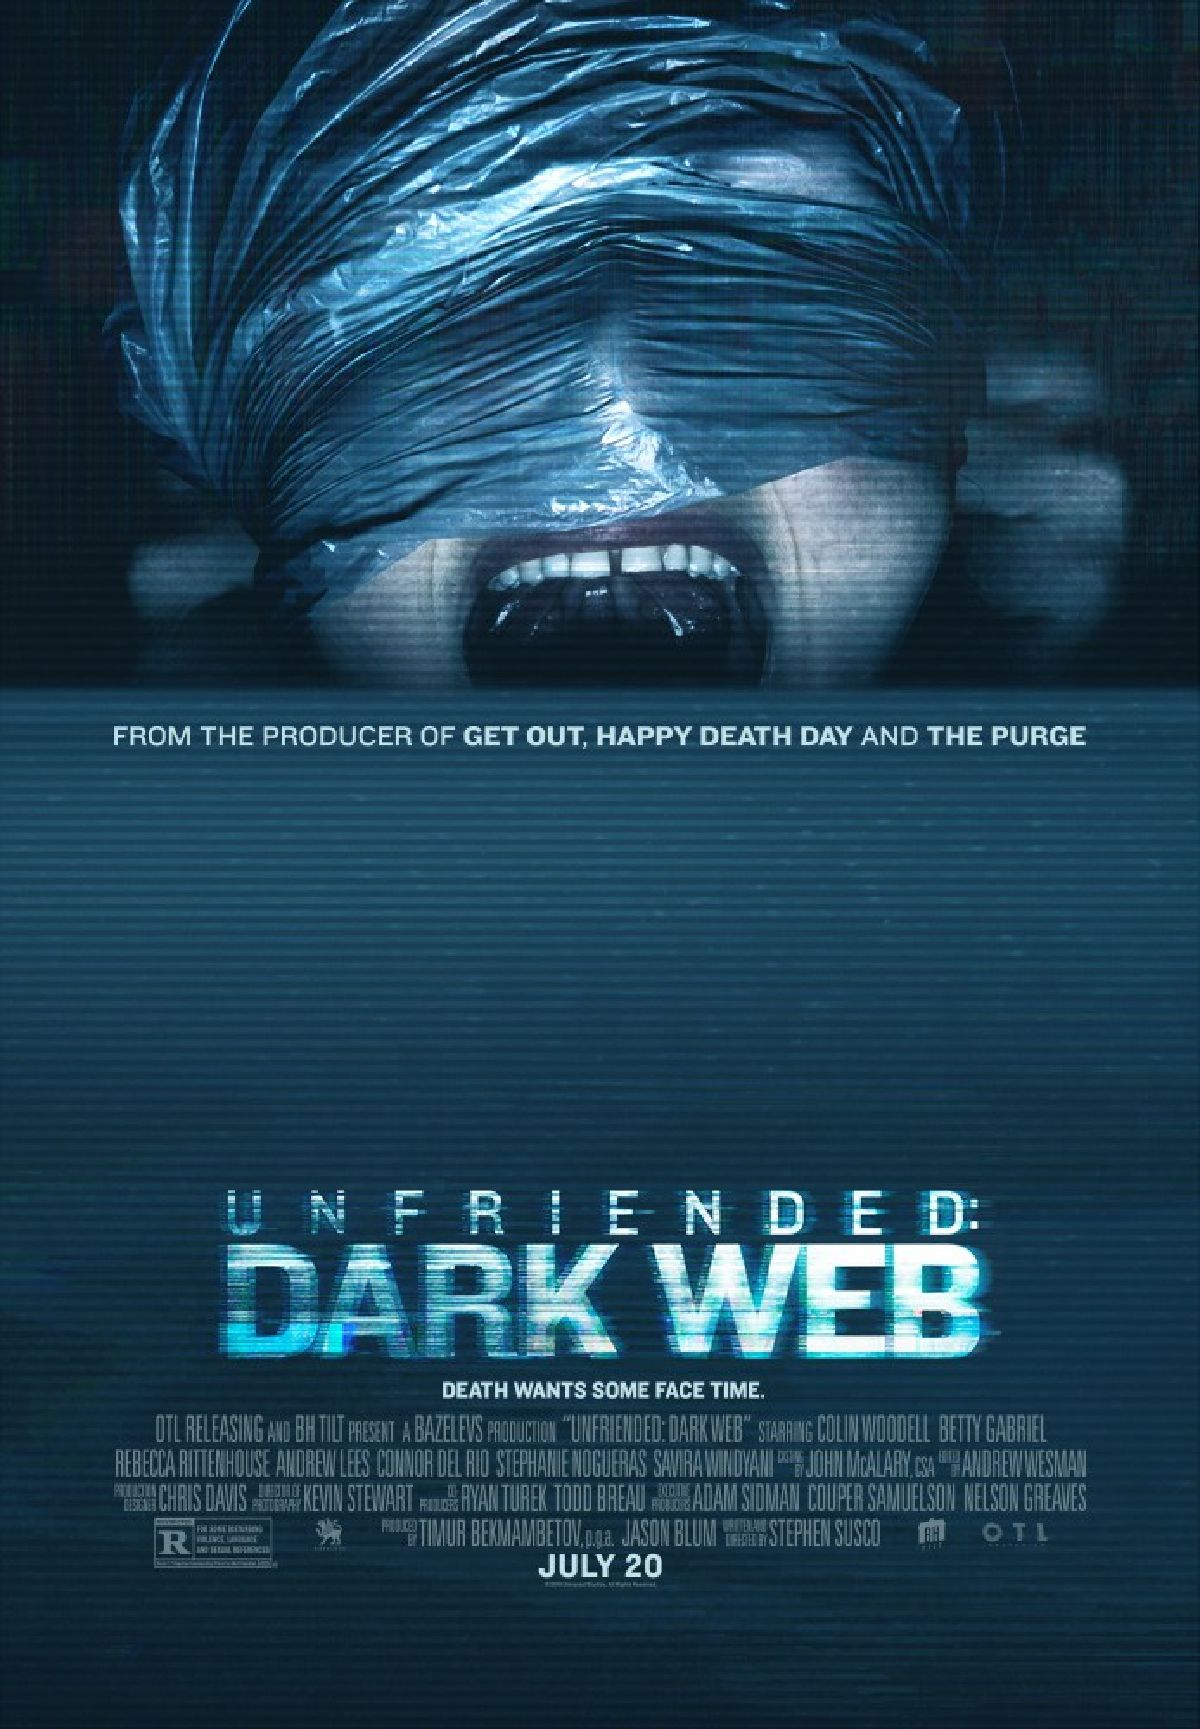 'Unfriended: Dark Web' movie poster